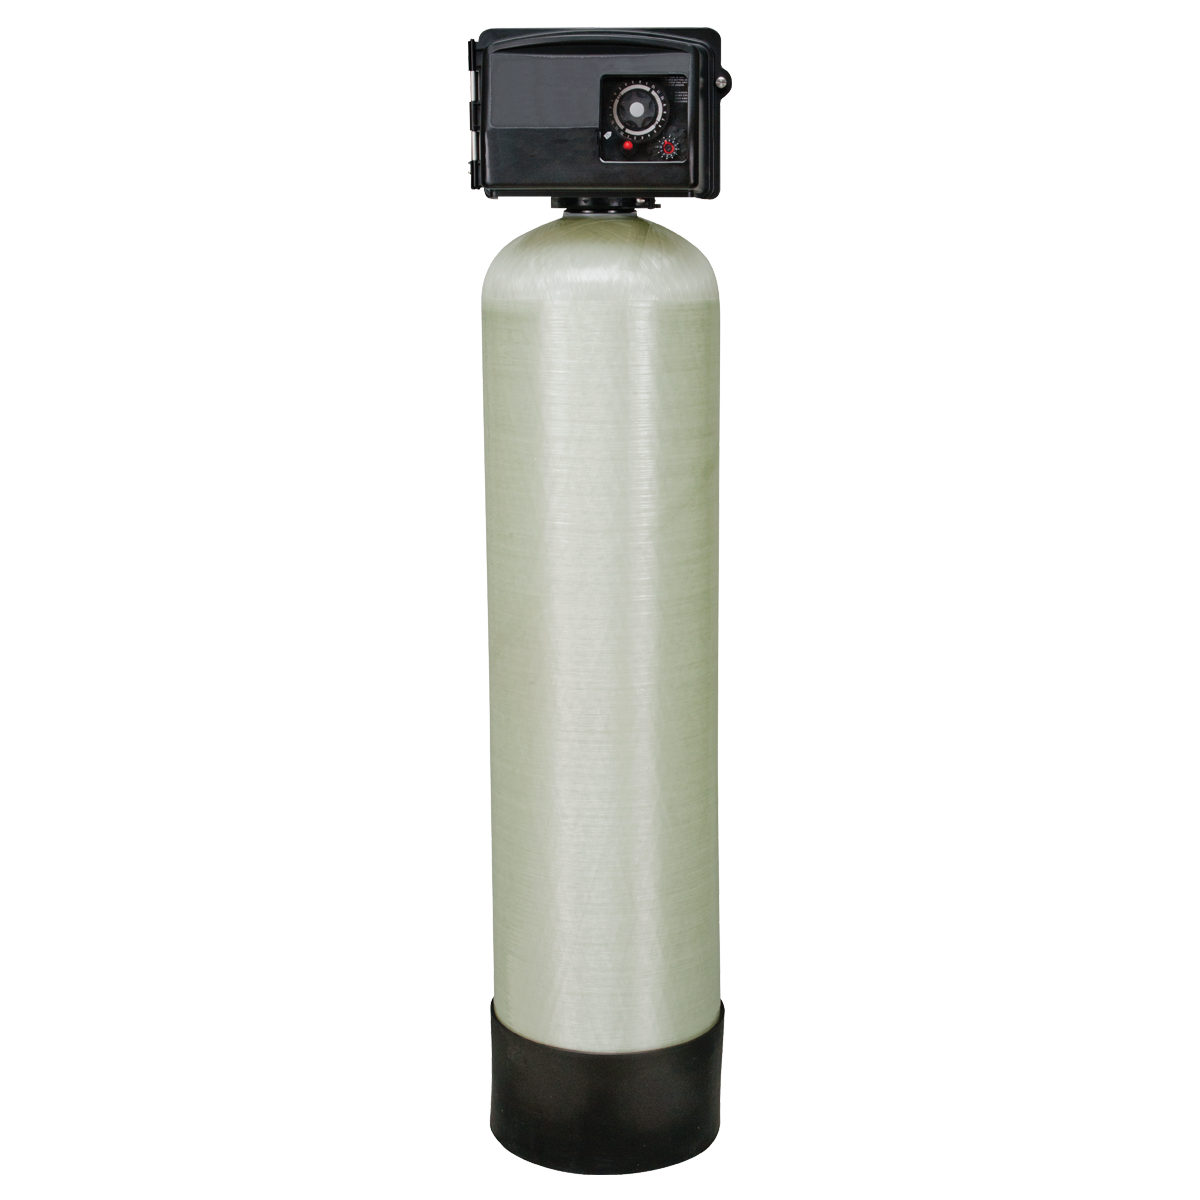 Residential Iron Filters